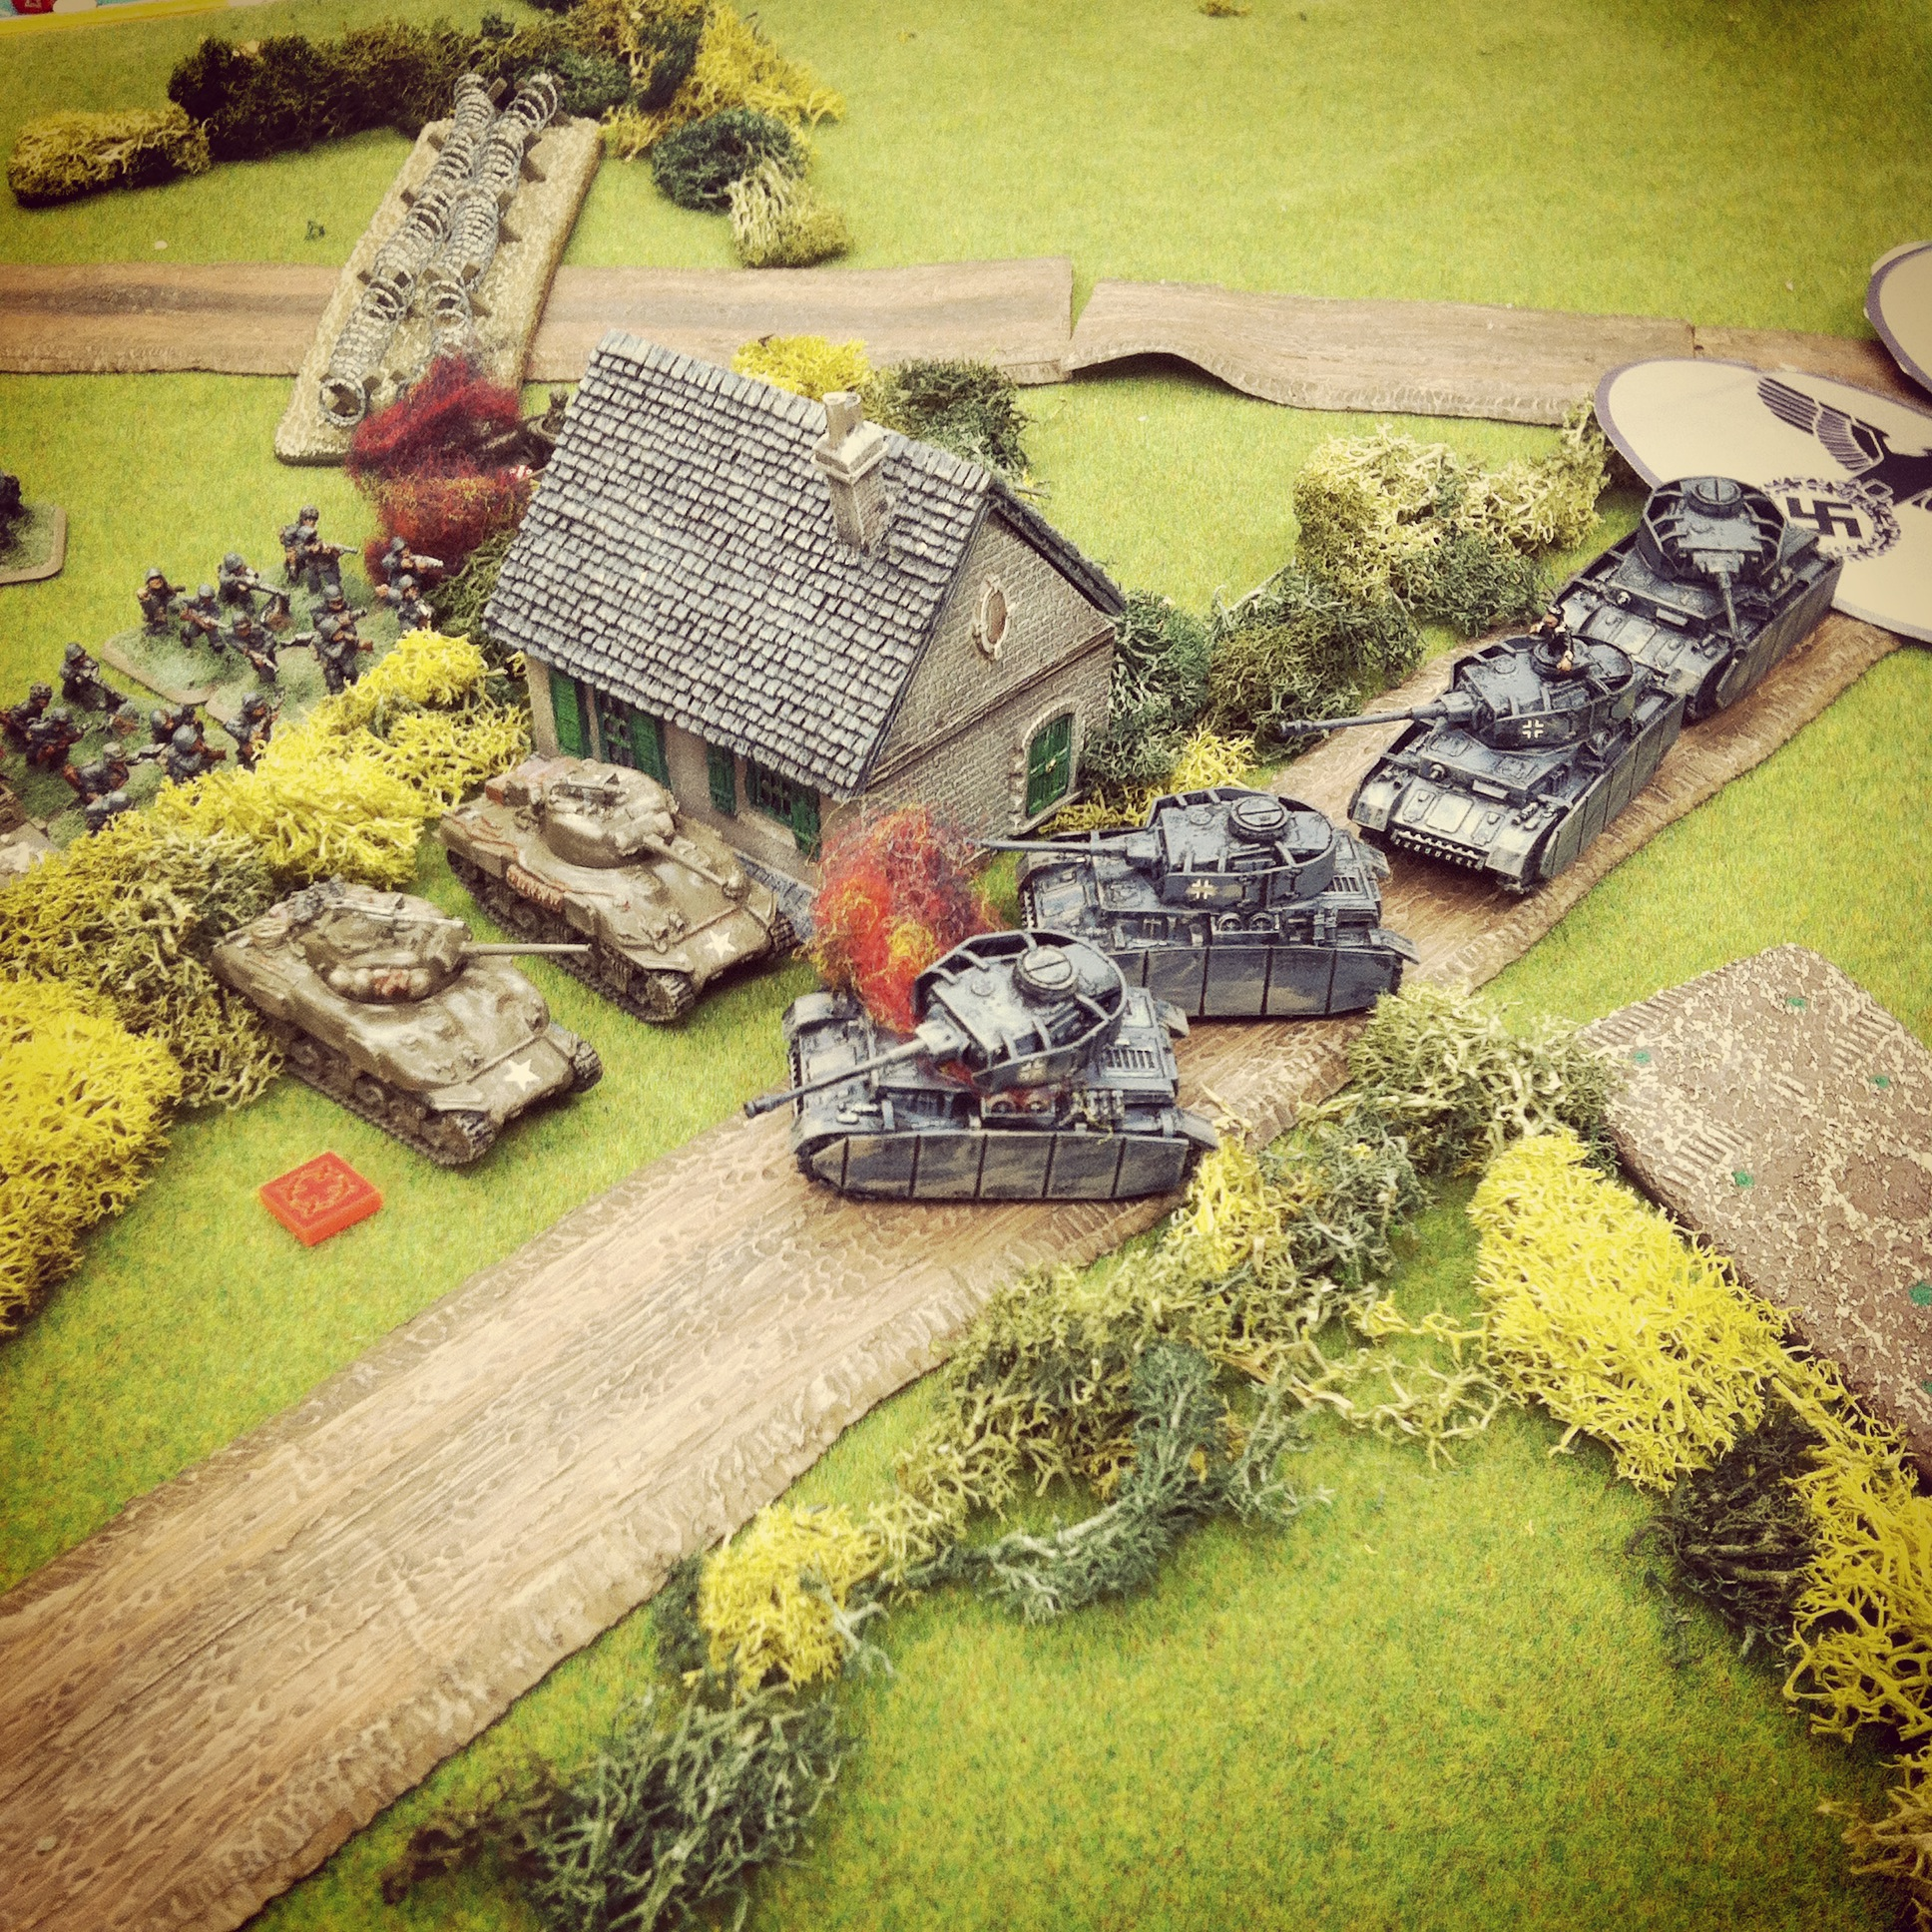 The lead German Panzer IV is destroyed, blocking the road